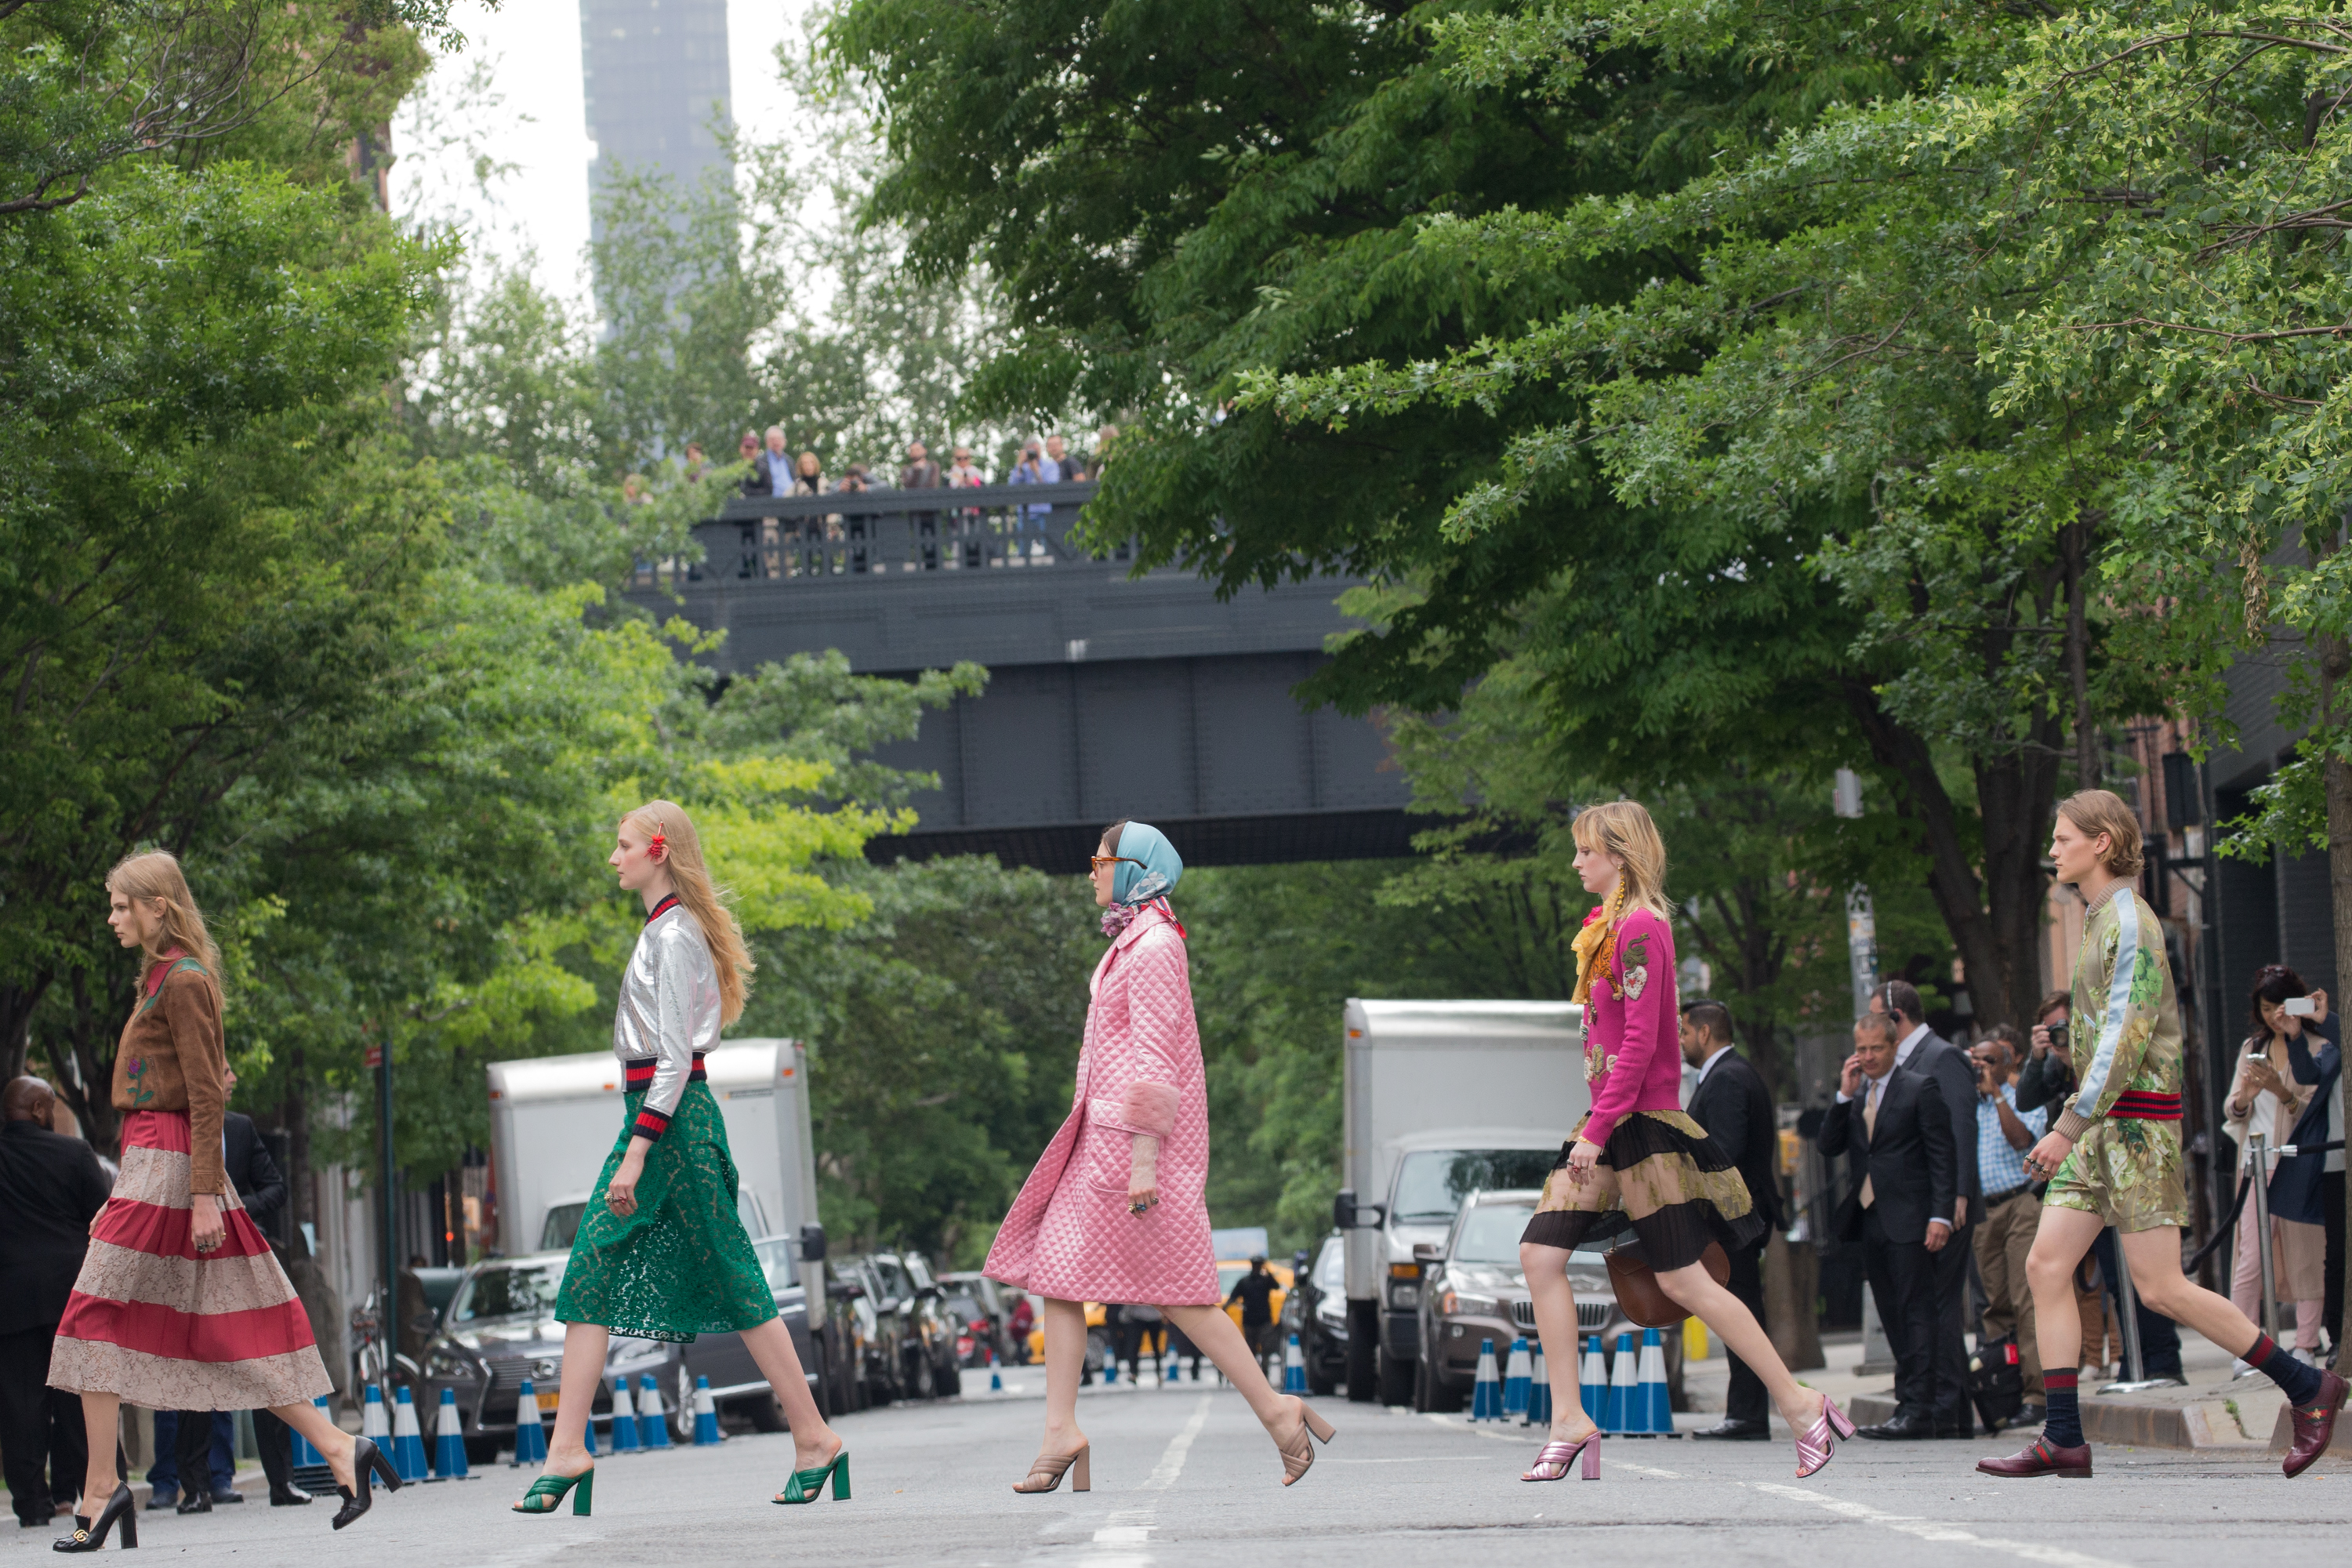 Fashion style Gucci to host Cruise 2019 show at ancient site of Alyscamps for girls